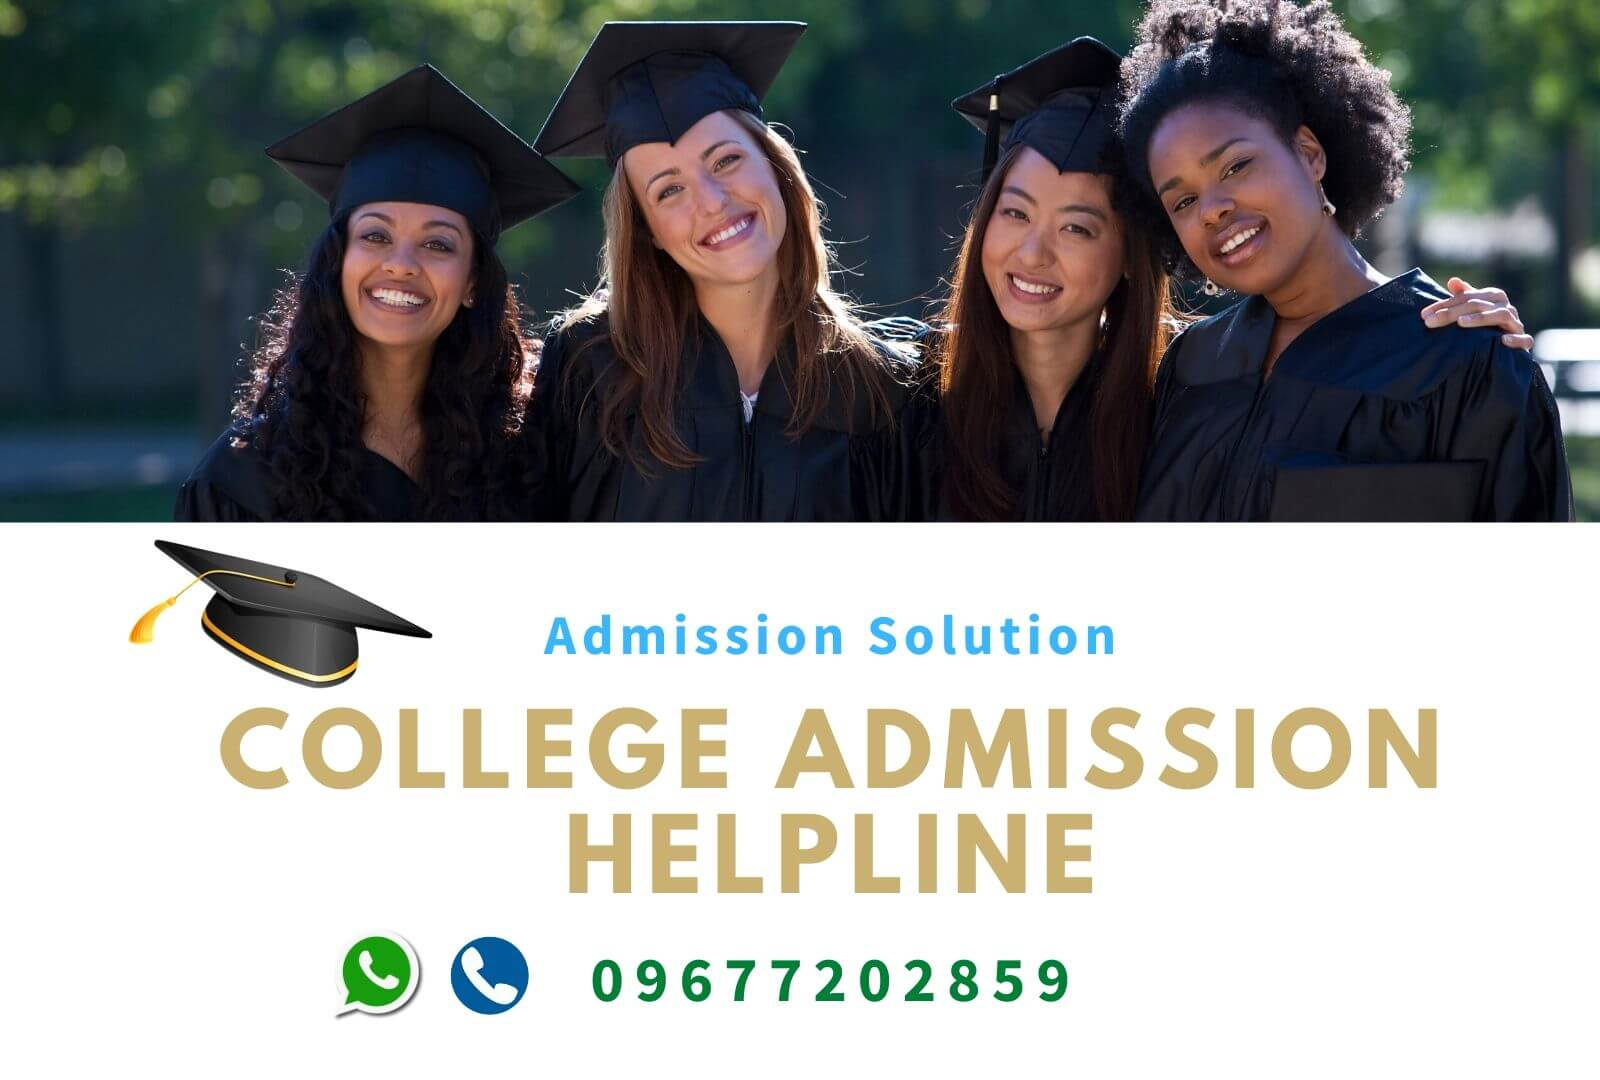 College Admission Helpline